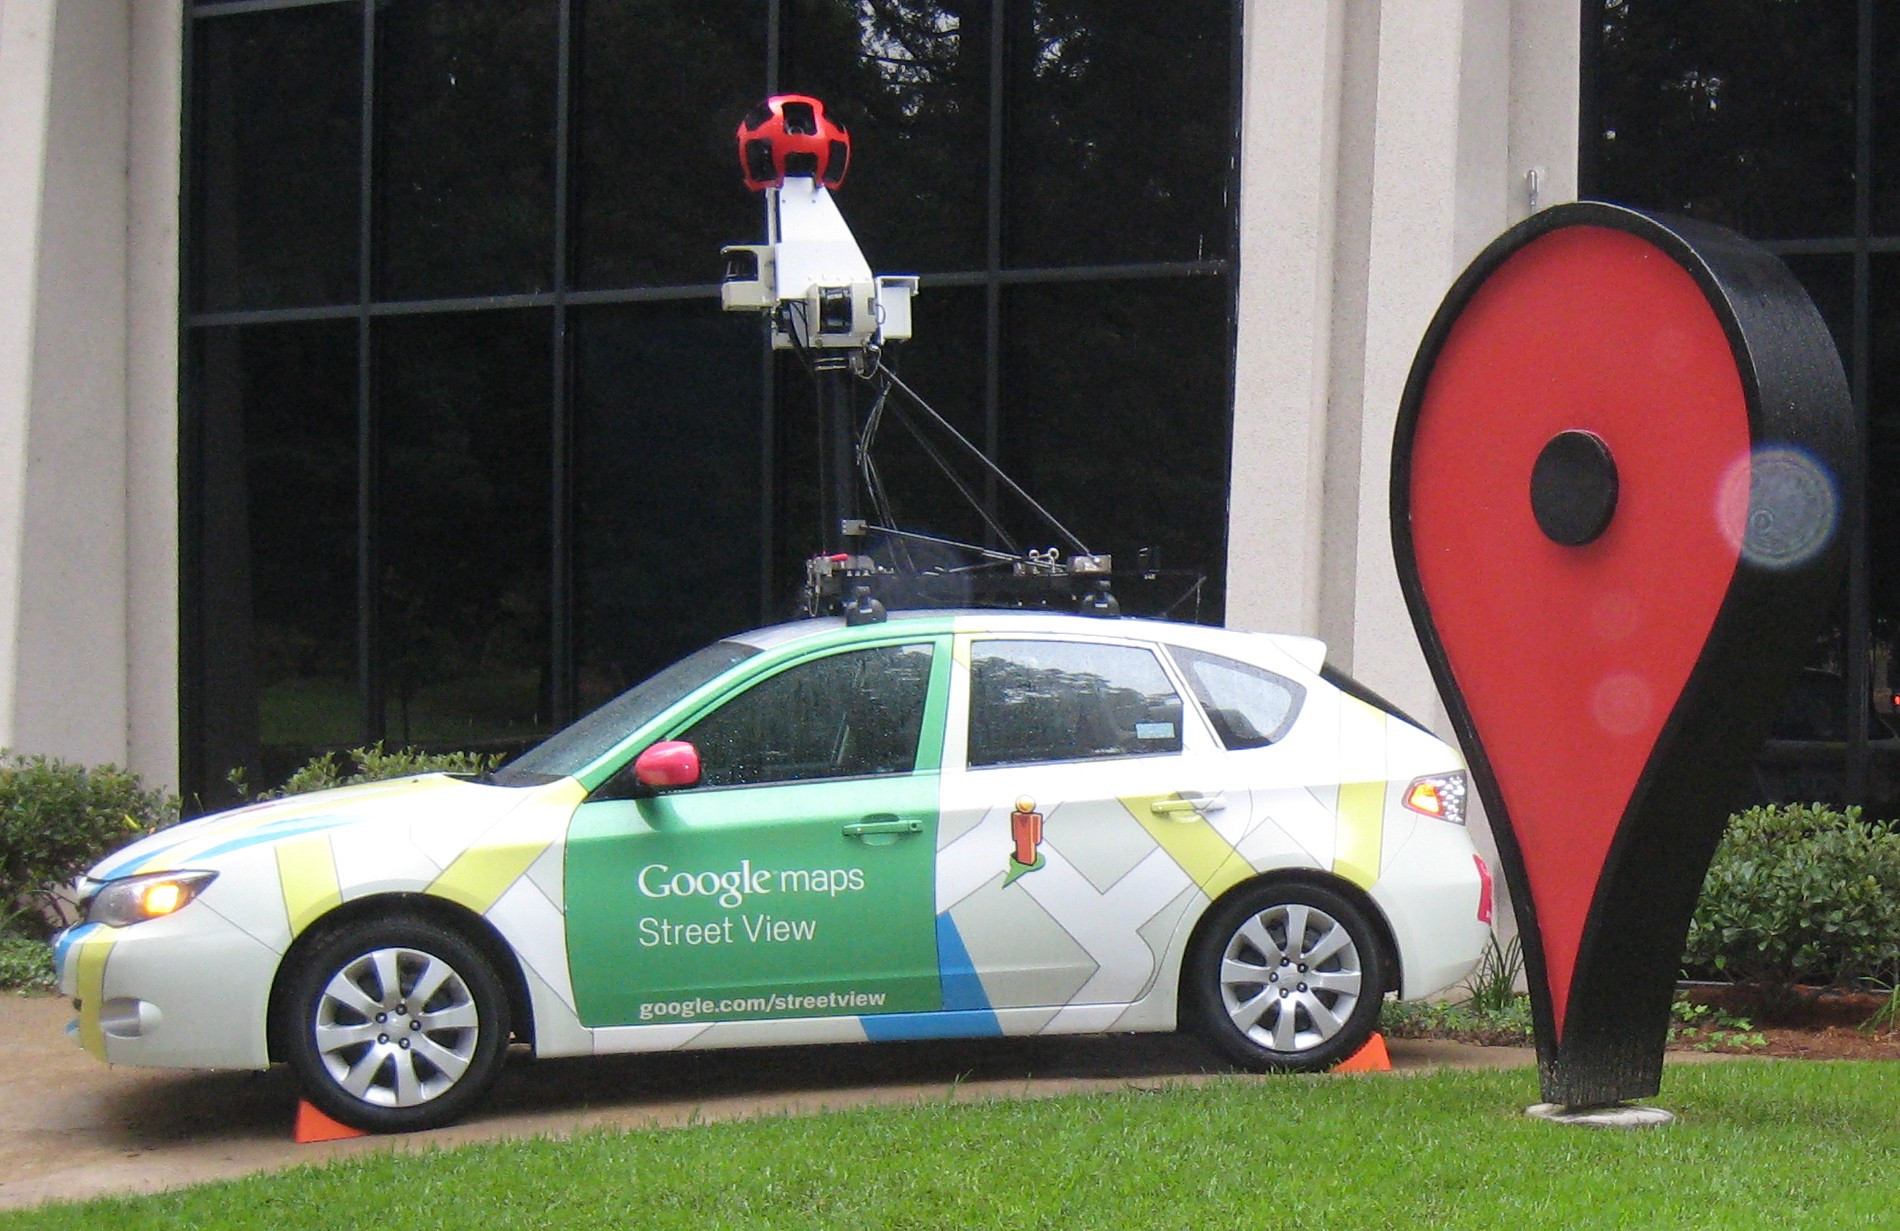 An interview with a Google Street View driver - The Message ... on google maps engine, google maps history, google maps weather, google street view car location, google maps caught on camera, google maps miles, google maps vehicle with camera,